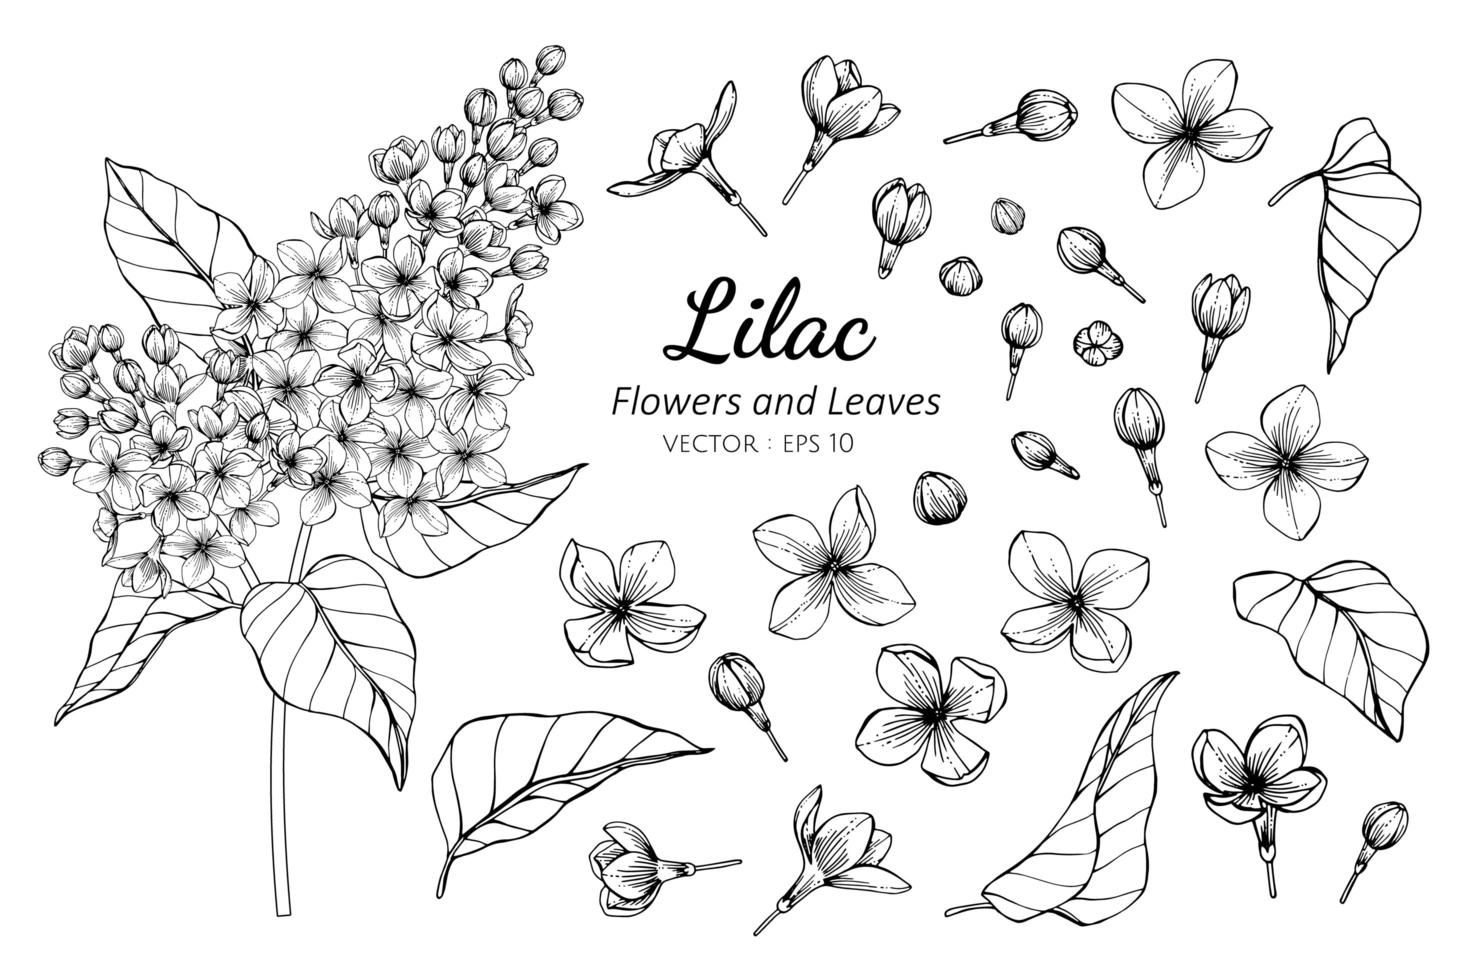 Collection of Lilac flowers and leaves vector